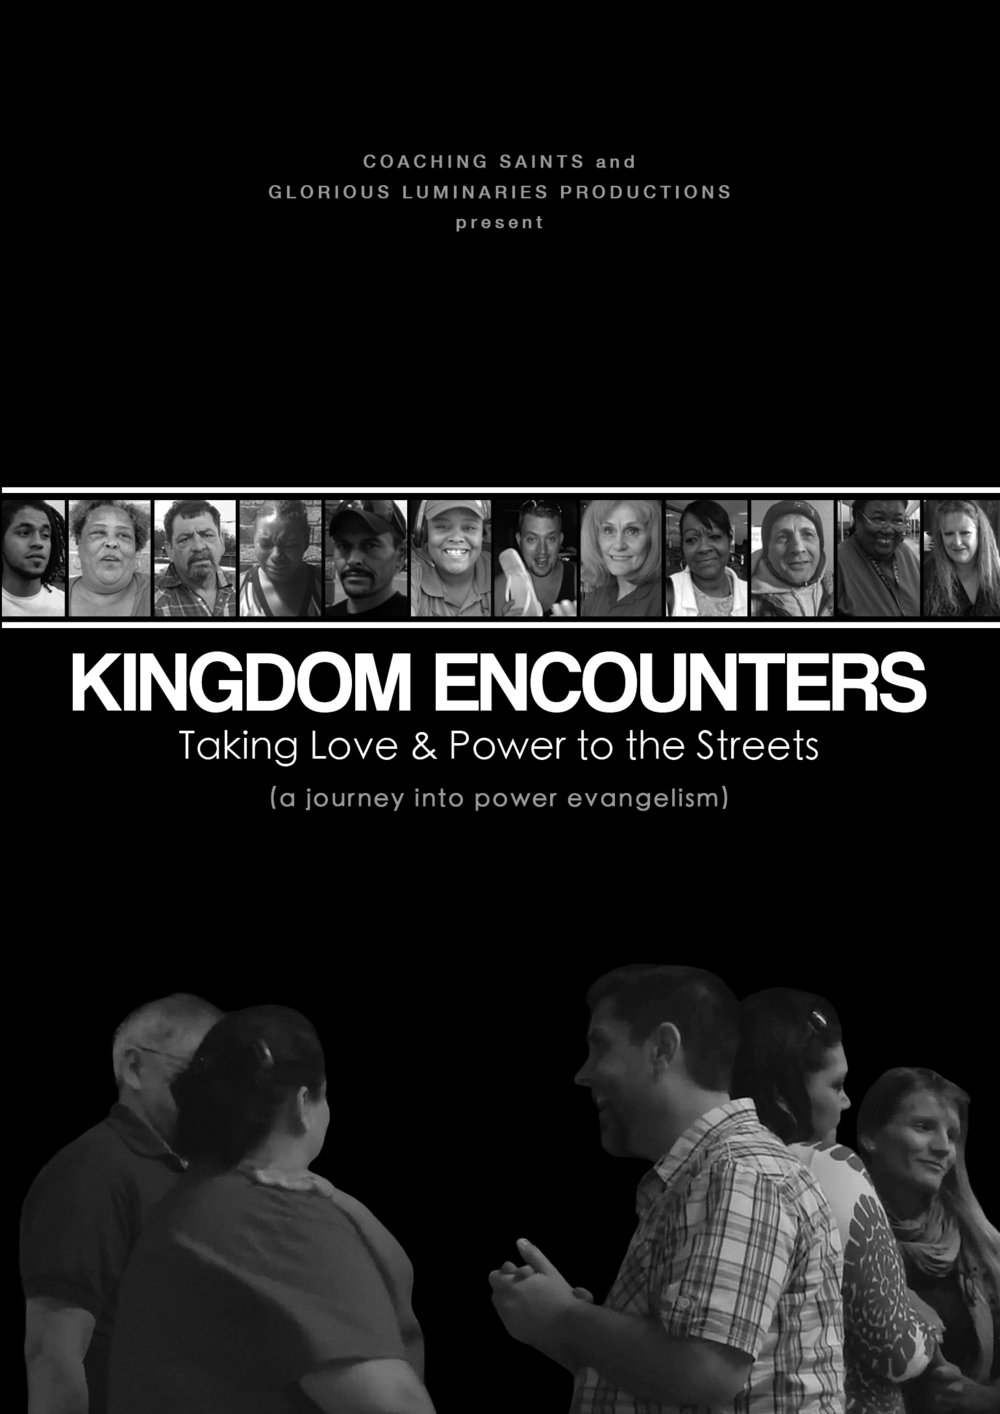 To purchase a digital download or rental of Kingdom Encounters,   go to   our Vimeo page  .    To purchase DVDs of Kingdom Encounters or other products ,  go to   coachingsaints.com  .